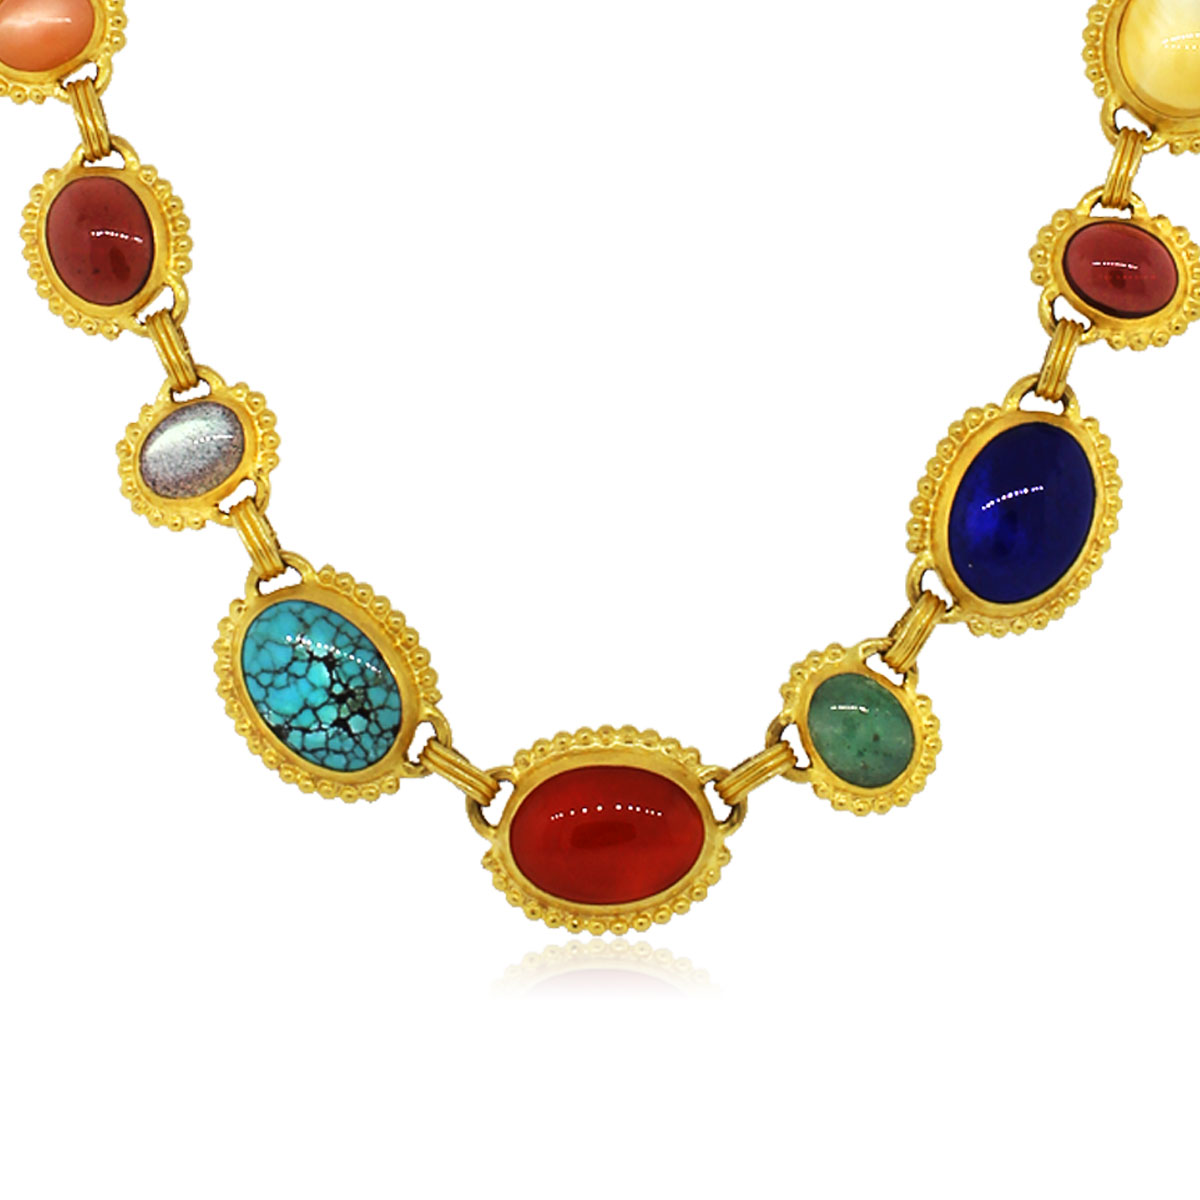 24k Yellow Gold Gurhan Afghan Necklace